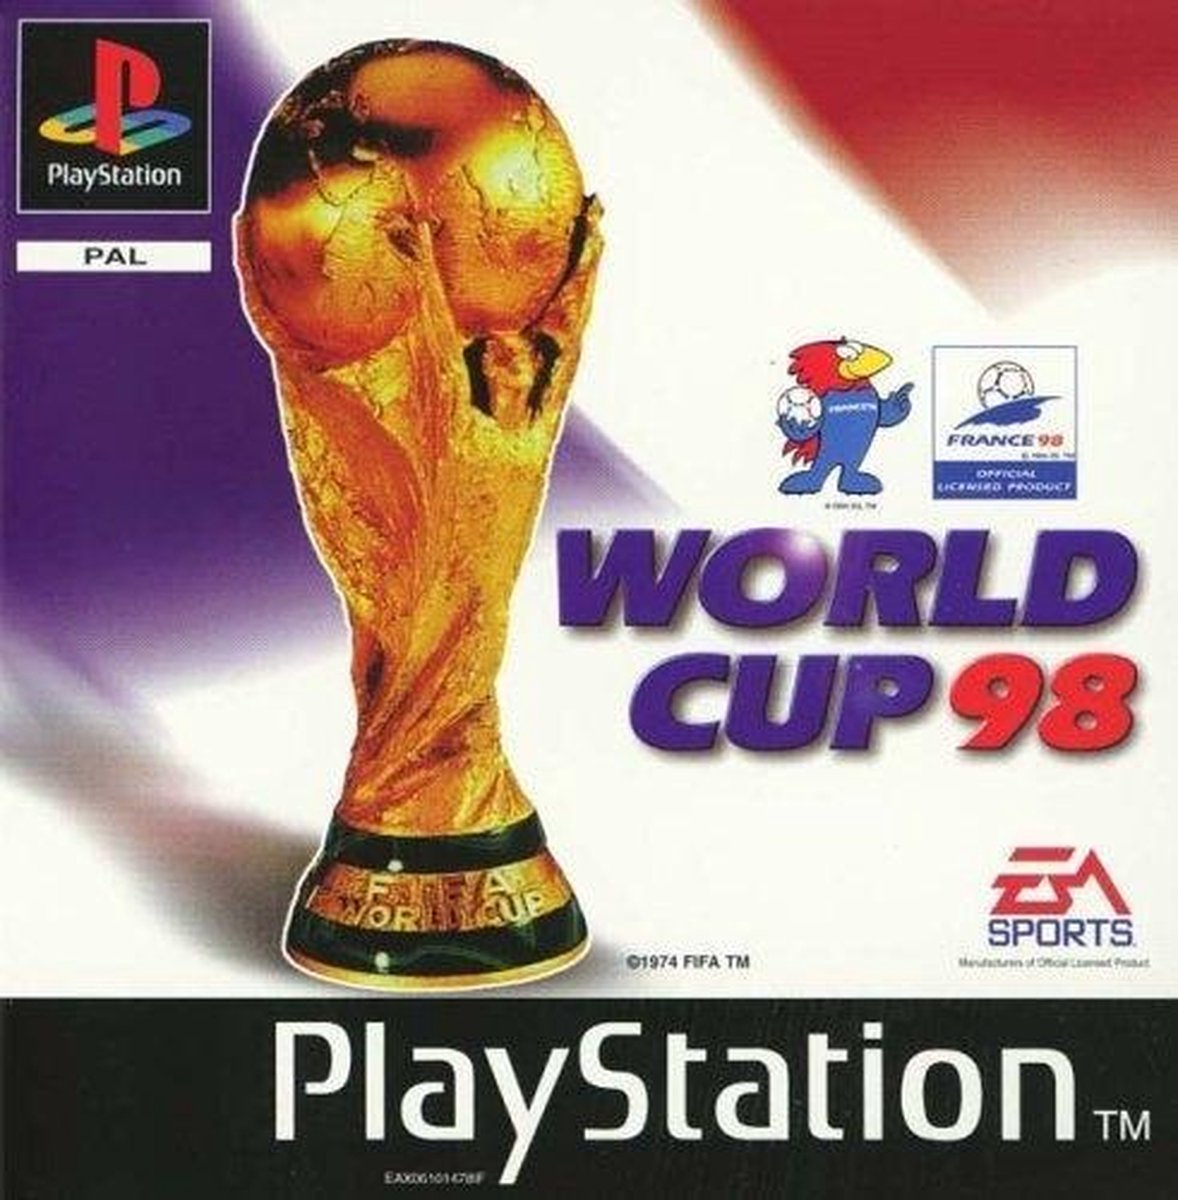 [Playstation 1] World Cup 98